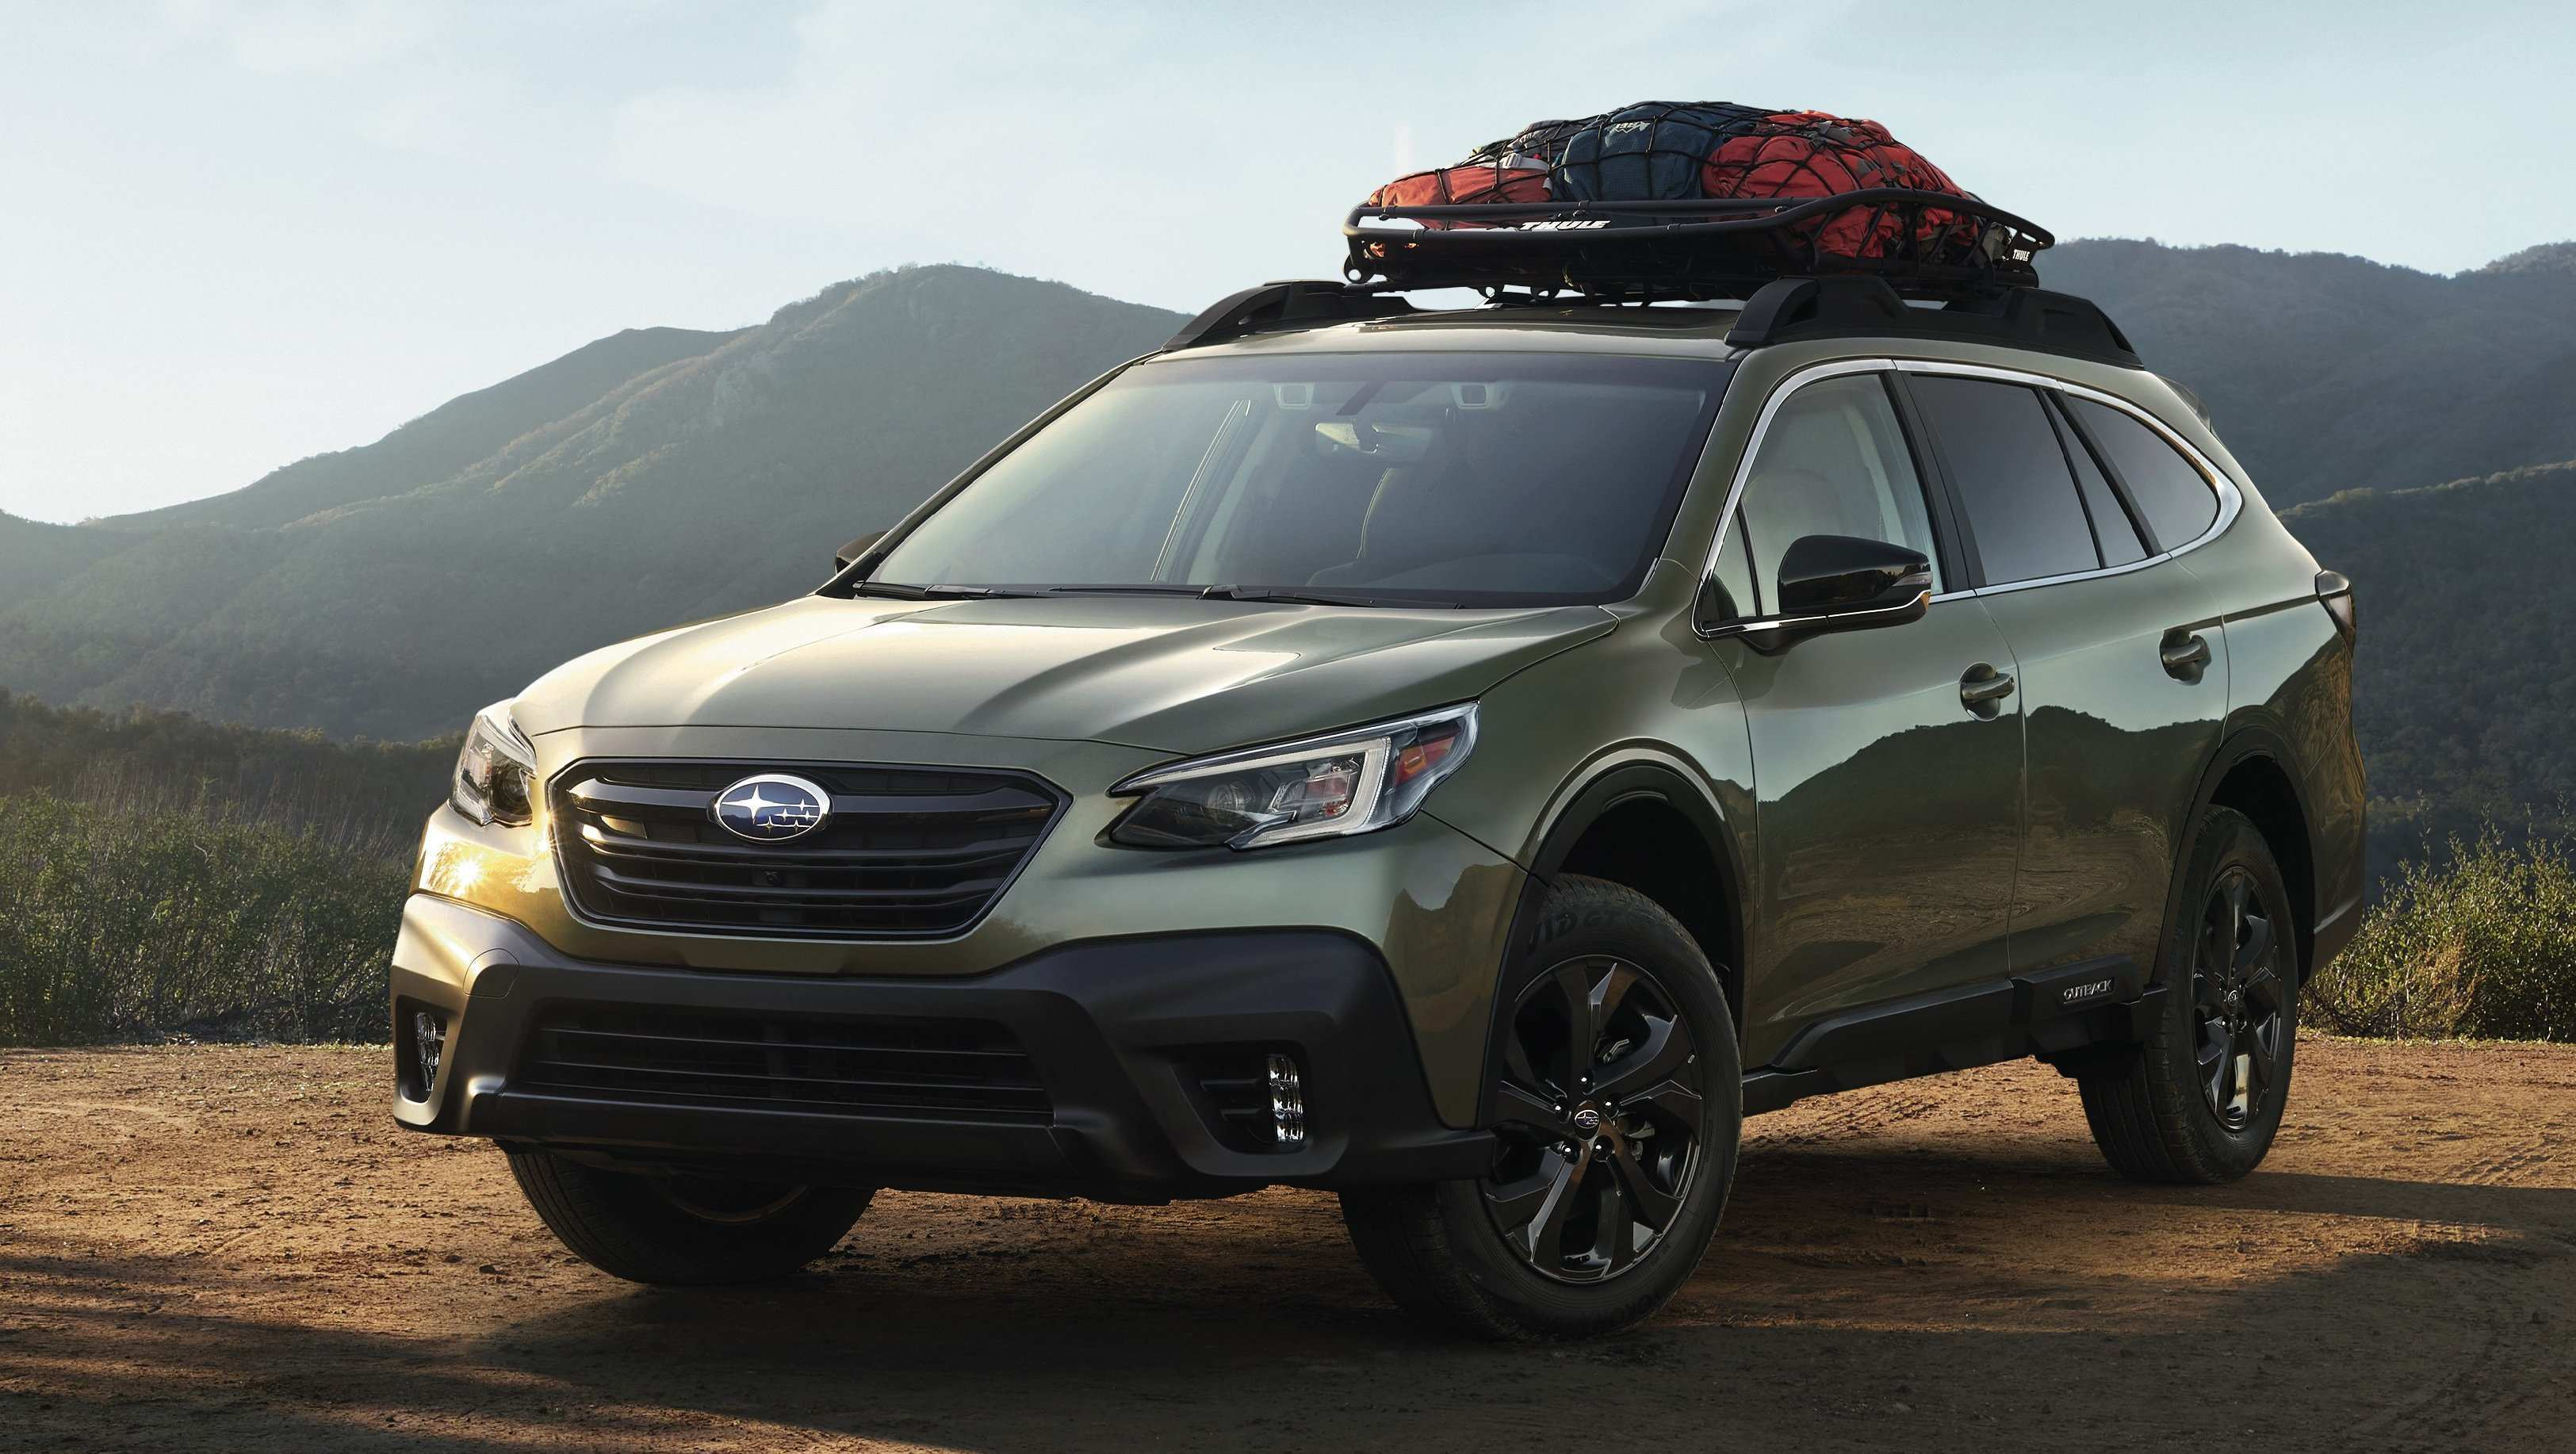 58 A Subaru Outback 2020 New York Picture